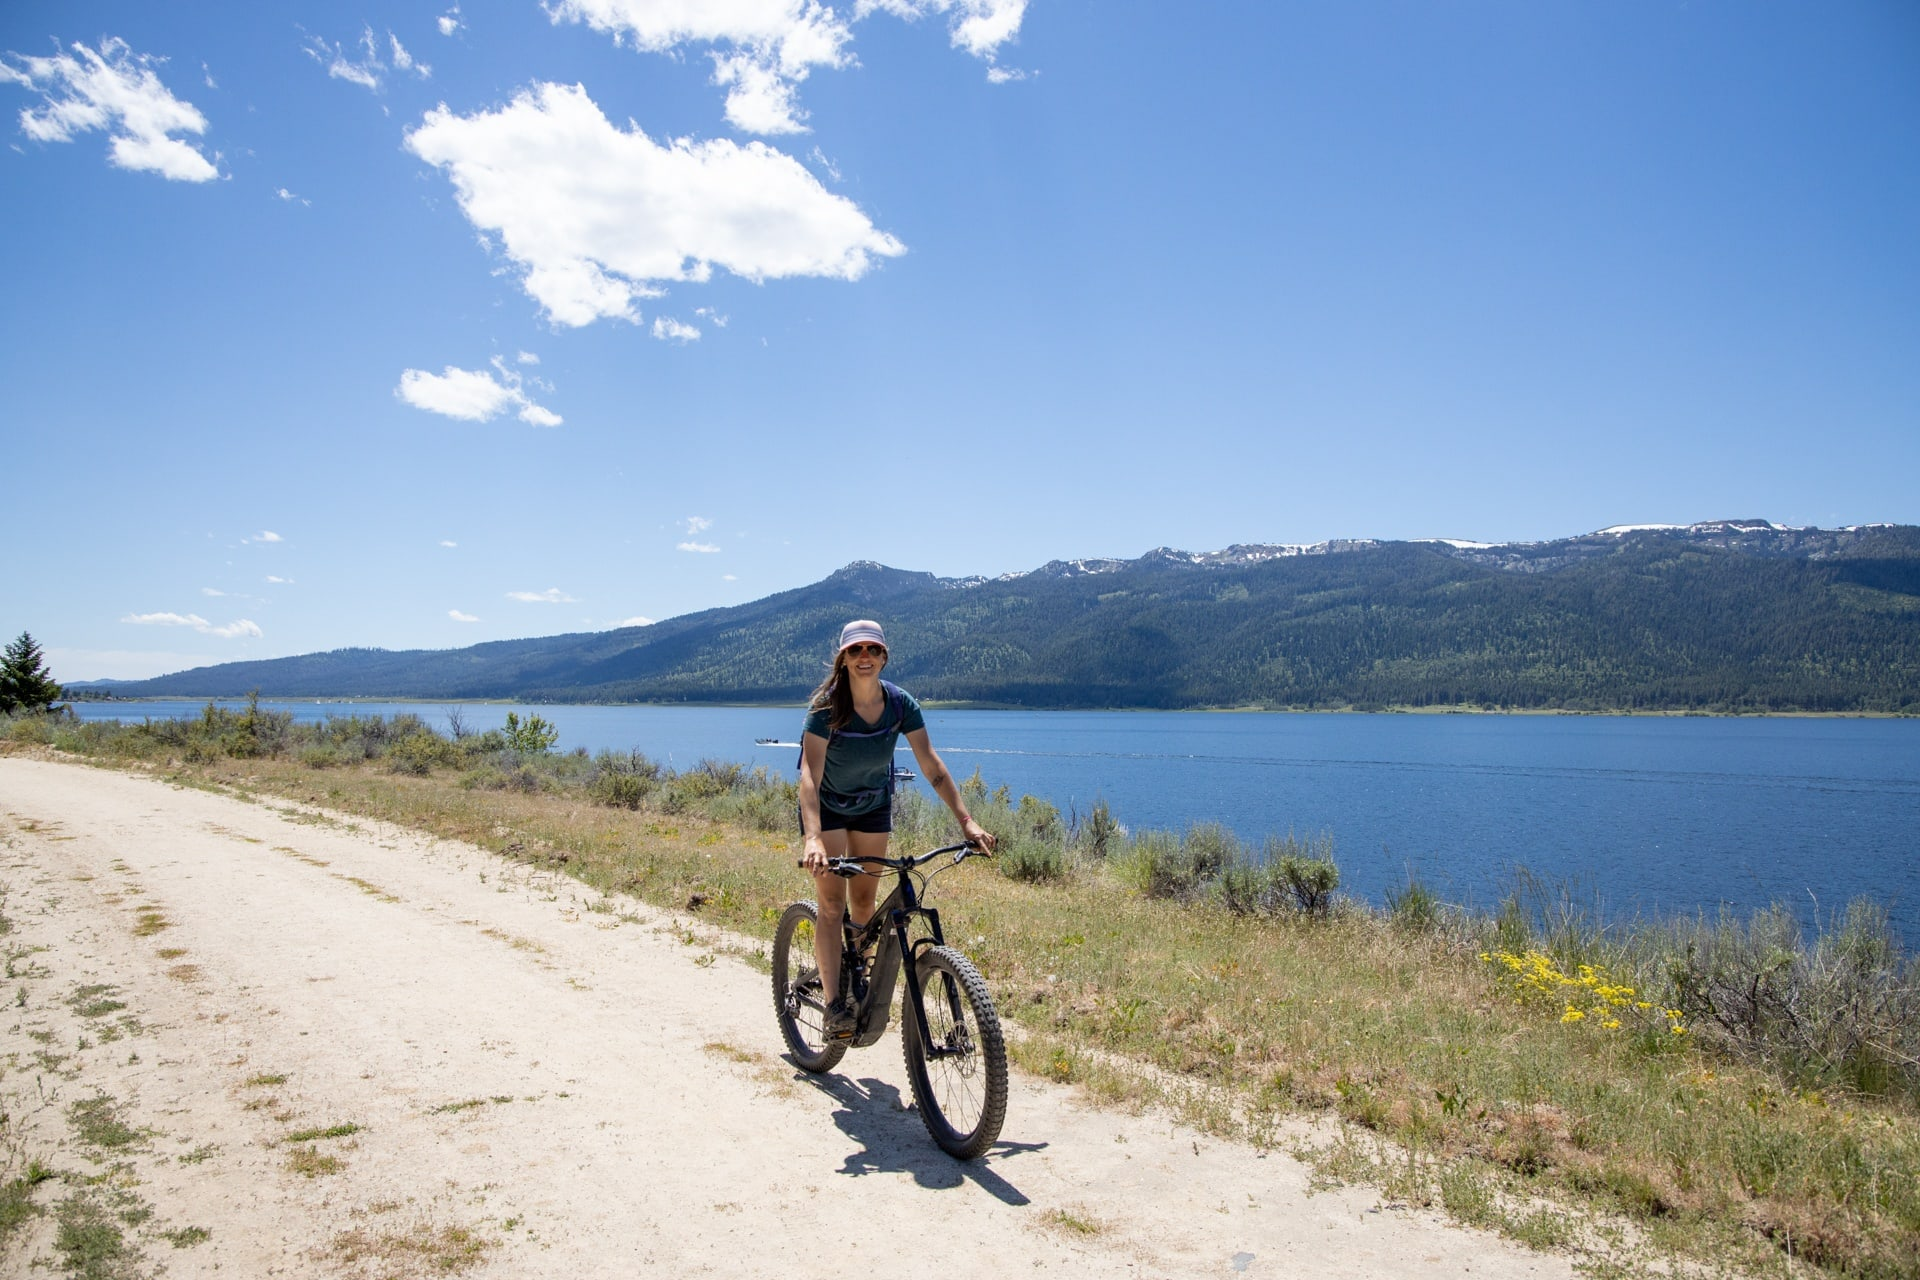 Biking the Crown Point Trail // Explore the best outdoor recreation in Cascade, Idaho with this 4-day itinerary featuring hot springs, hiking, off-roading, biking, and more.